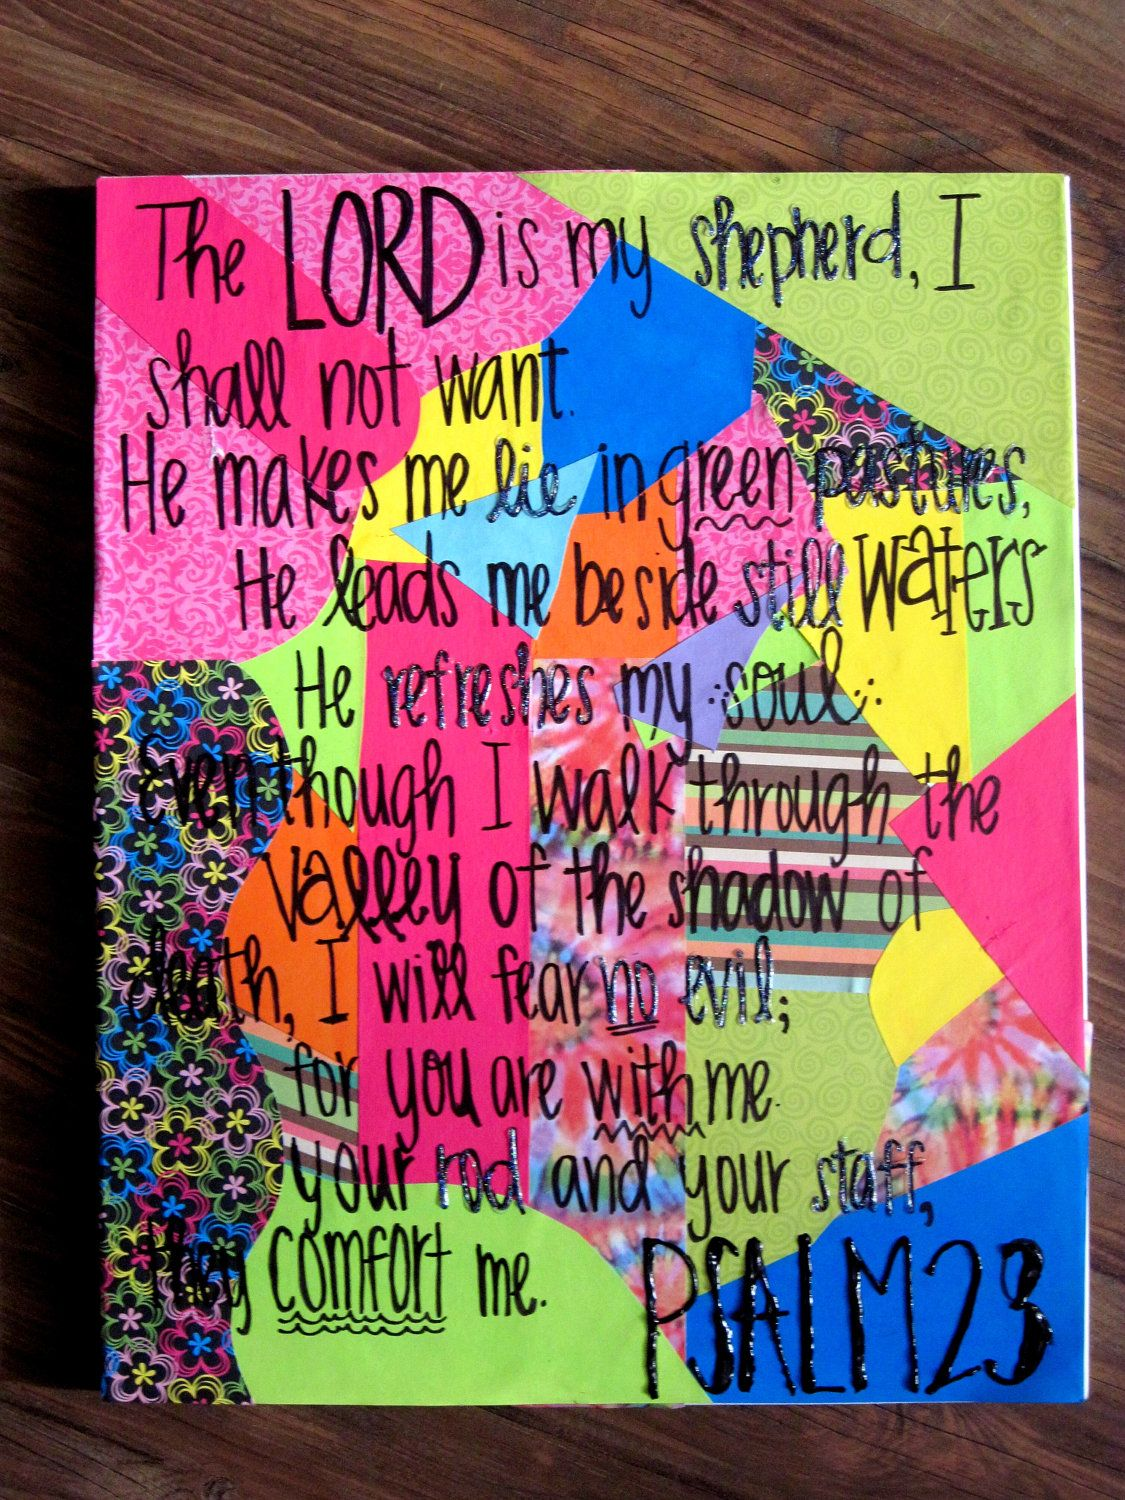 Scrapbook ideas on canvas - Bible Verse On Canvas With Scrapbook Paper For Ali S Room